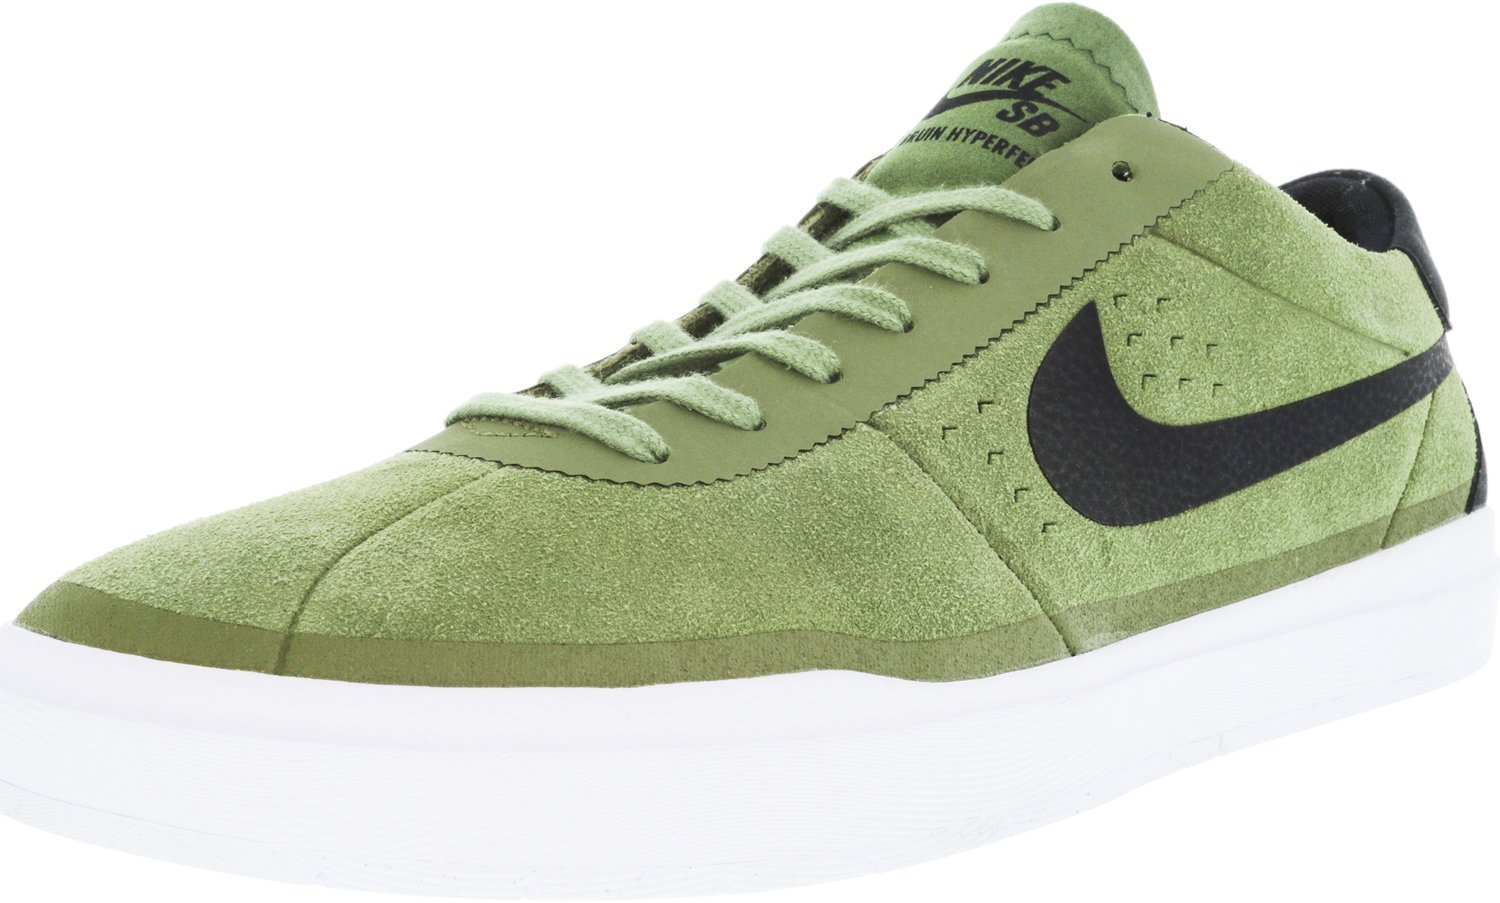 Nike , Herren Sneaker black dark grey white volt 001 44,5 EU  45 EU|palm green black white 300